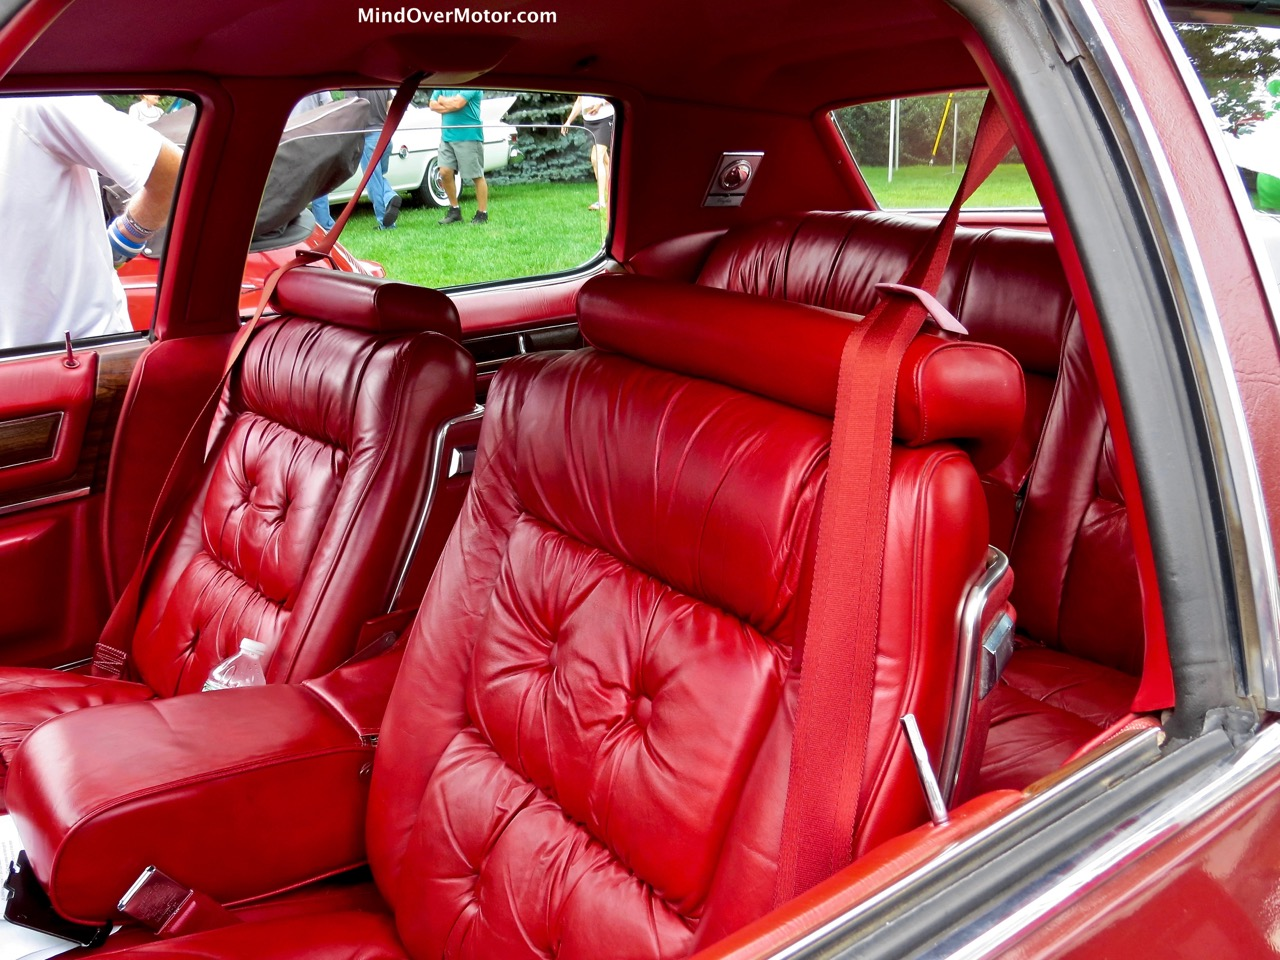 1976 Cadillac Fleetwood Seats